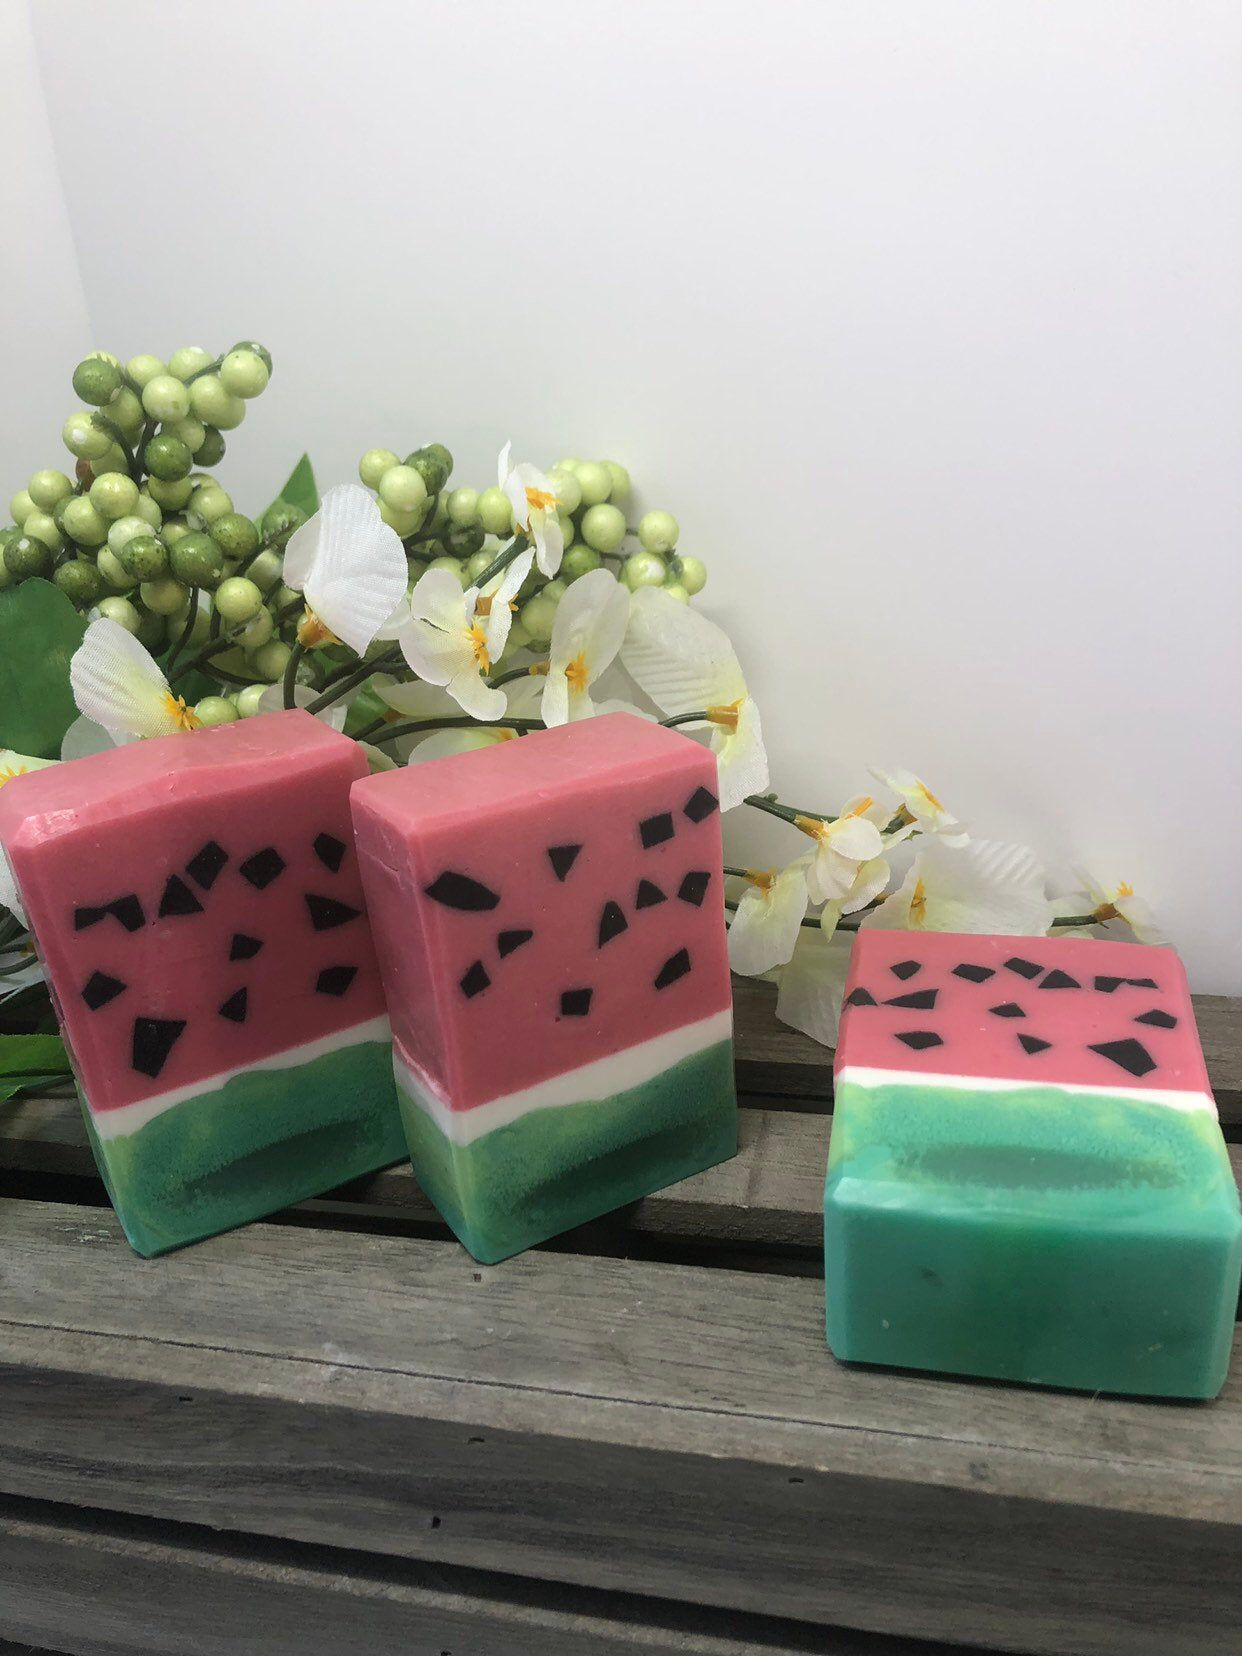 Excited to share this item from my etsy shop Watermelon